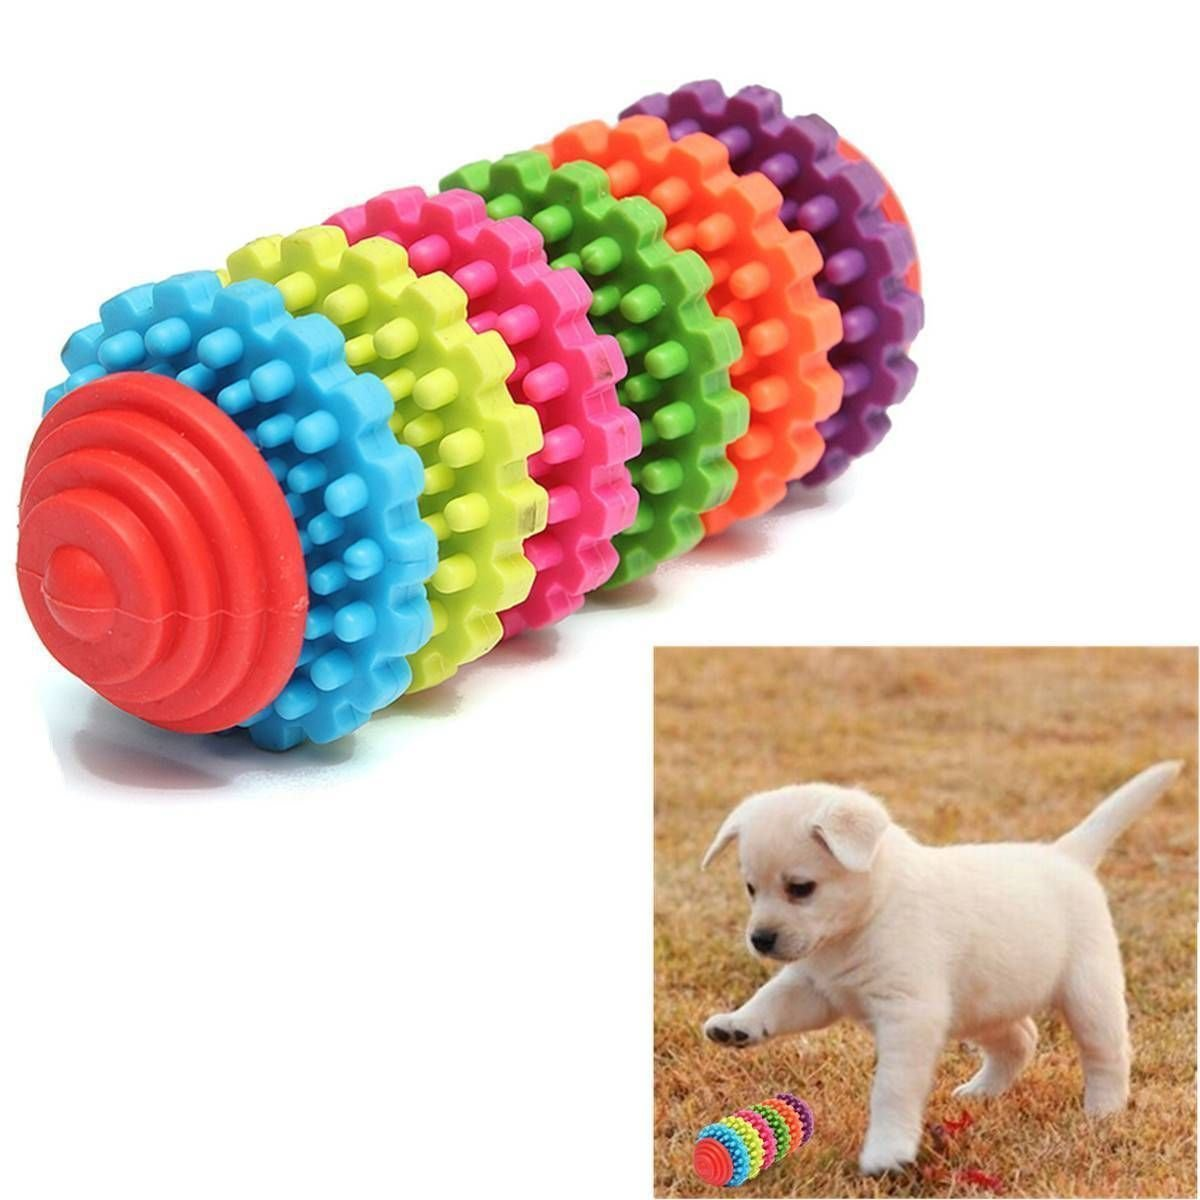 Dog Toys For Teething Puppies